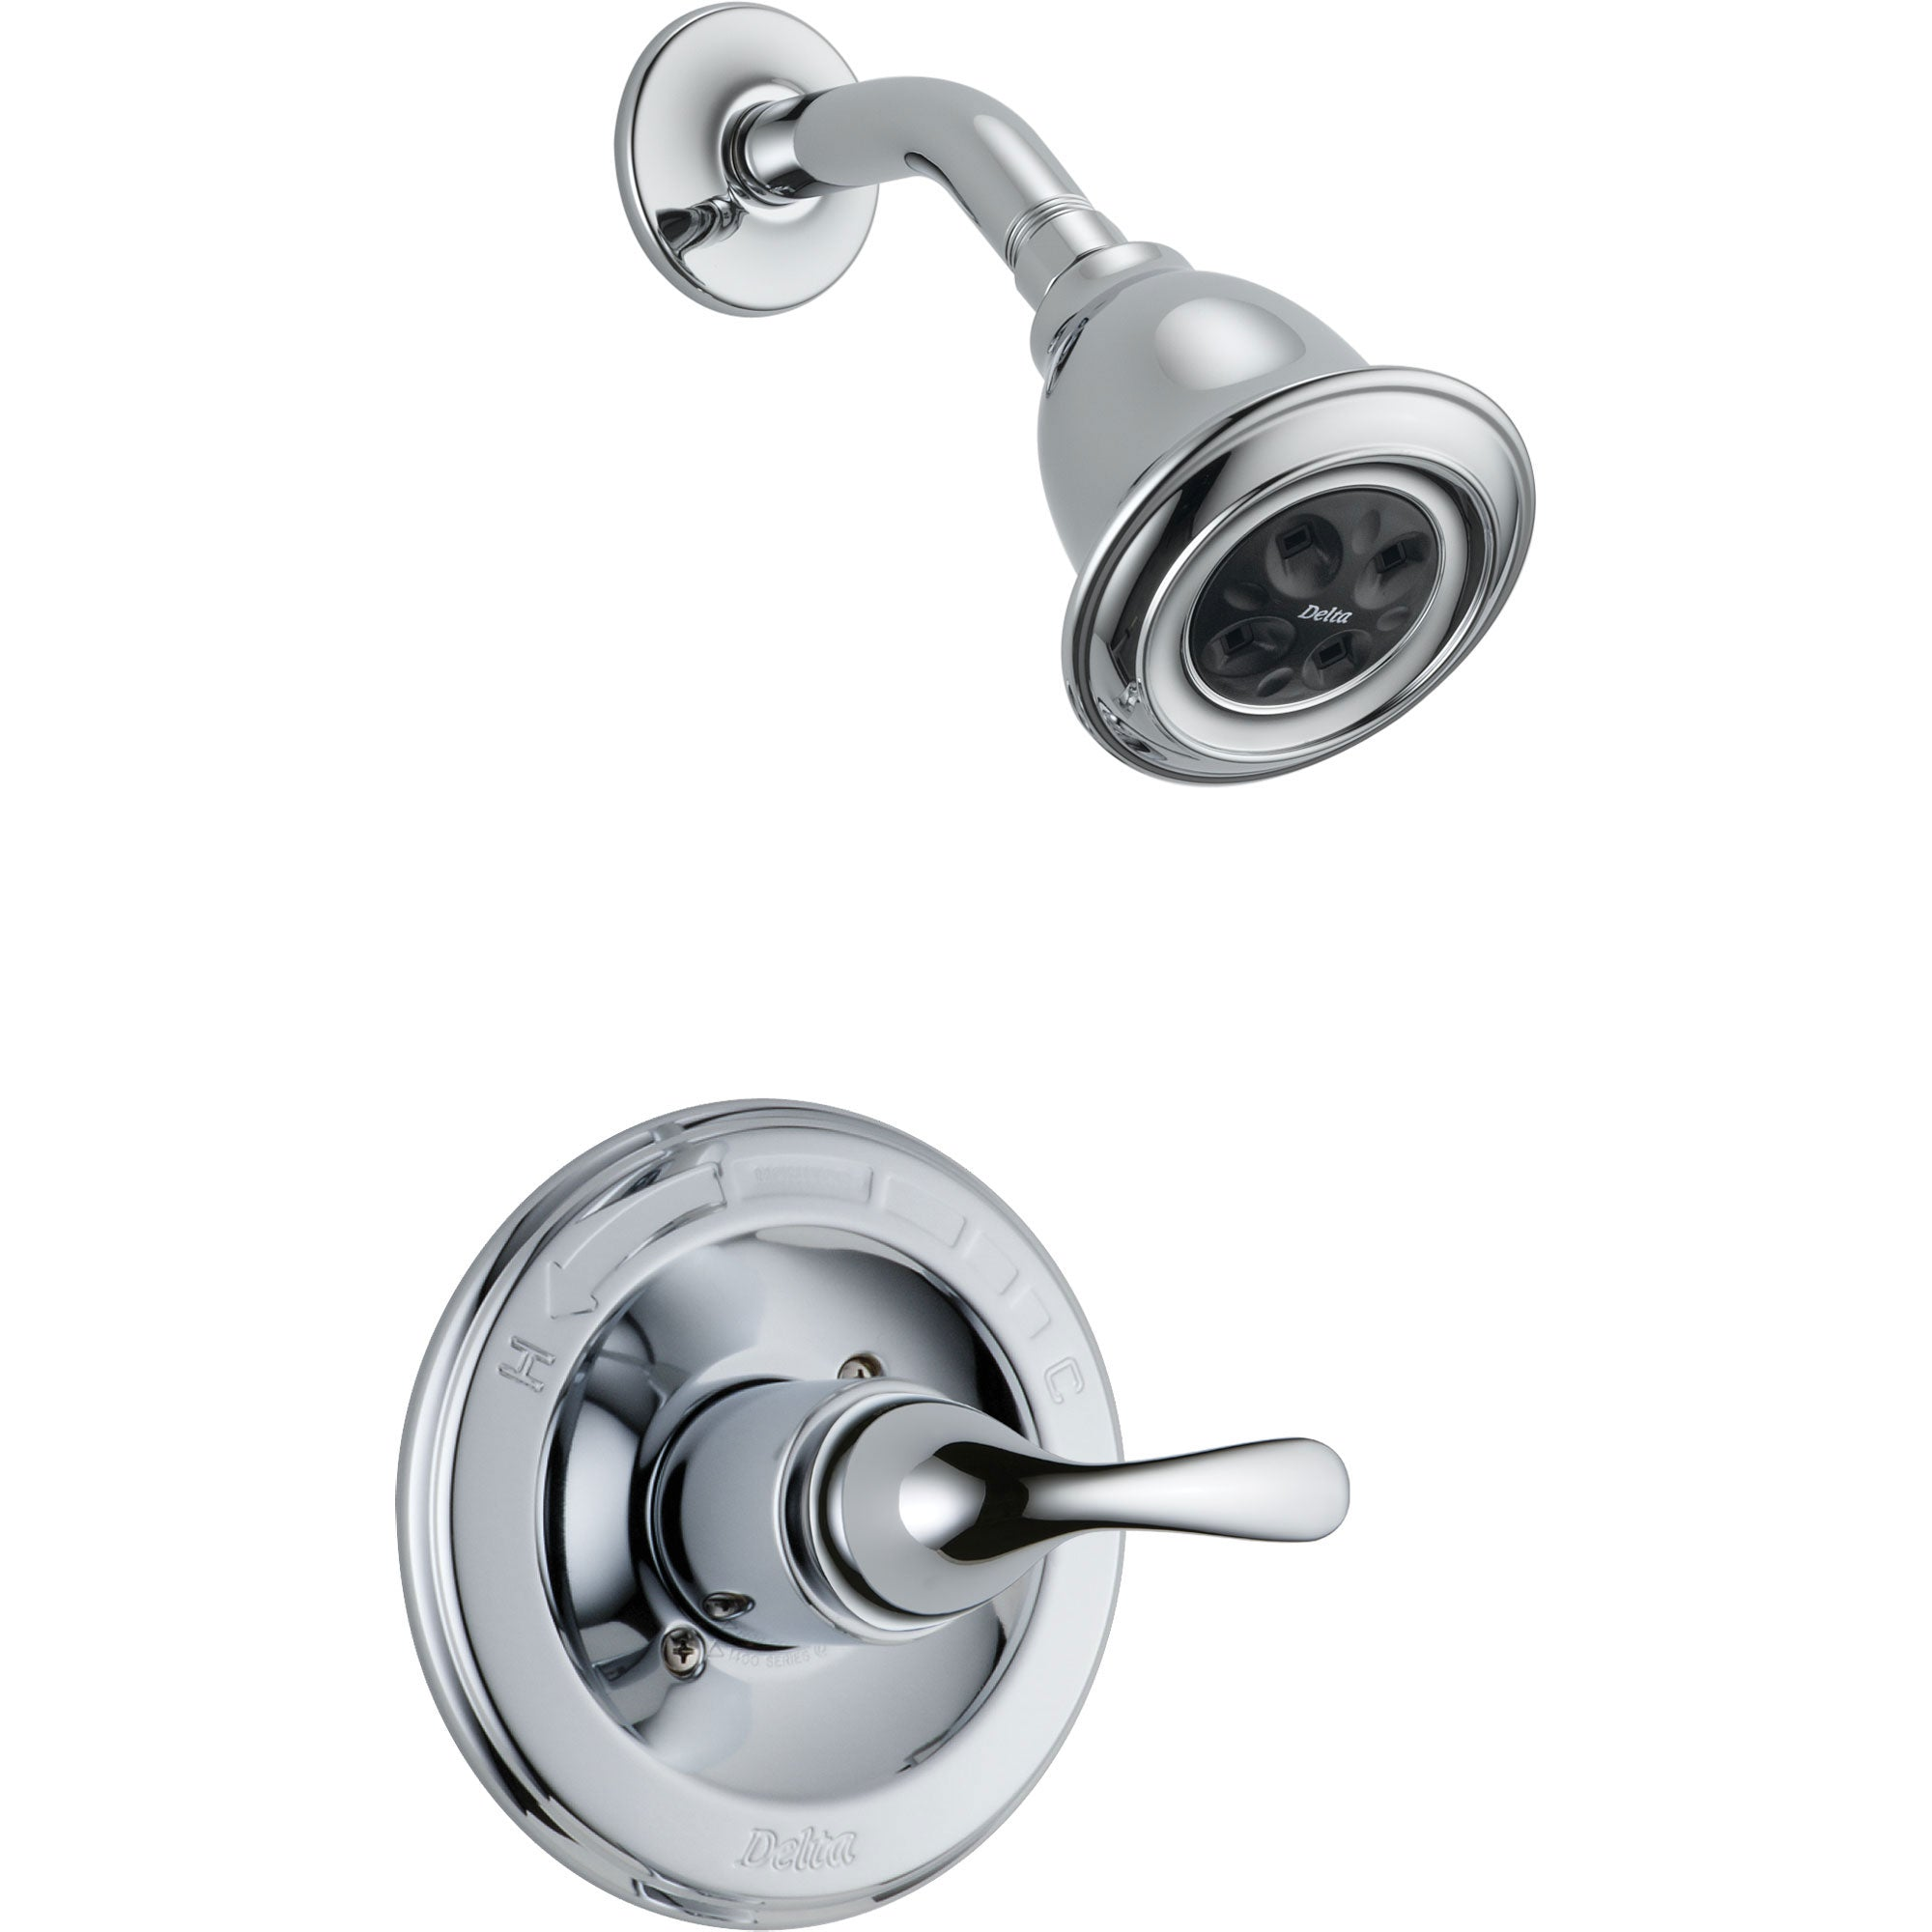 Delta Classic Single Handle Chrome Finish Shower Faucet Trim Kit 550070